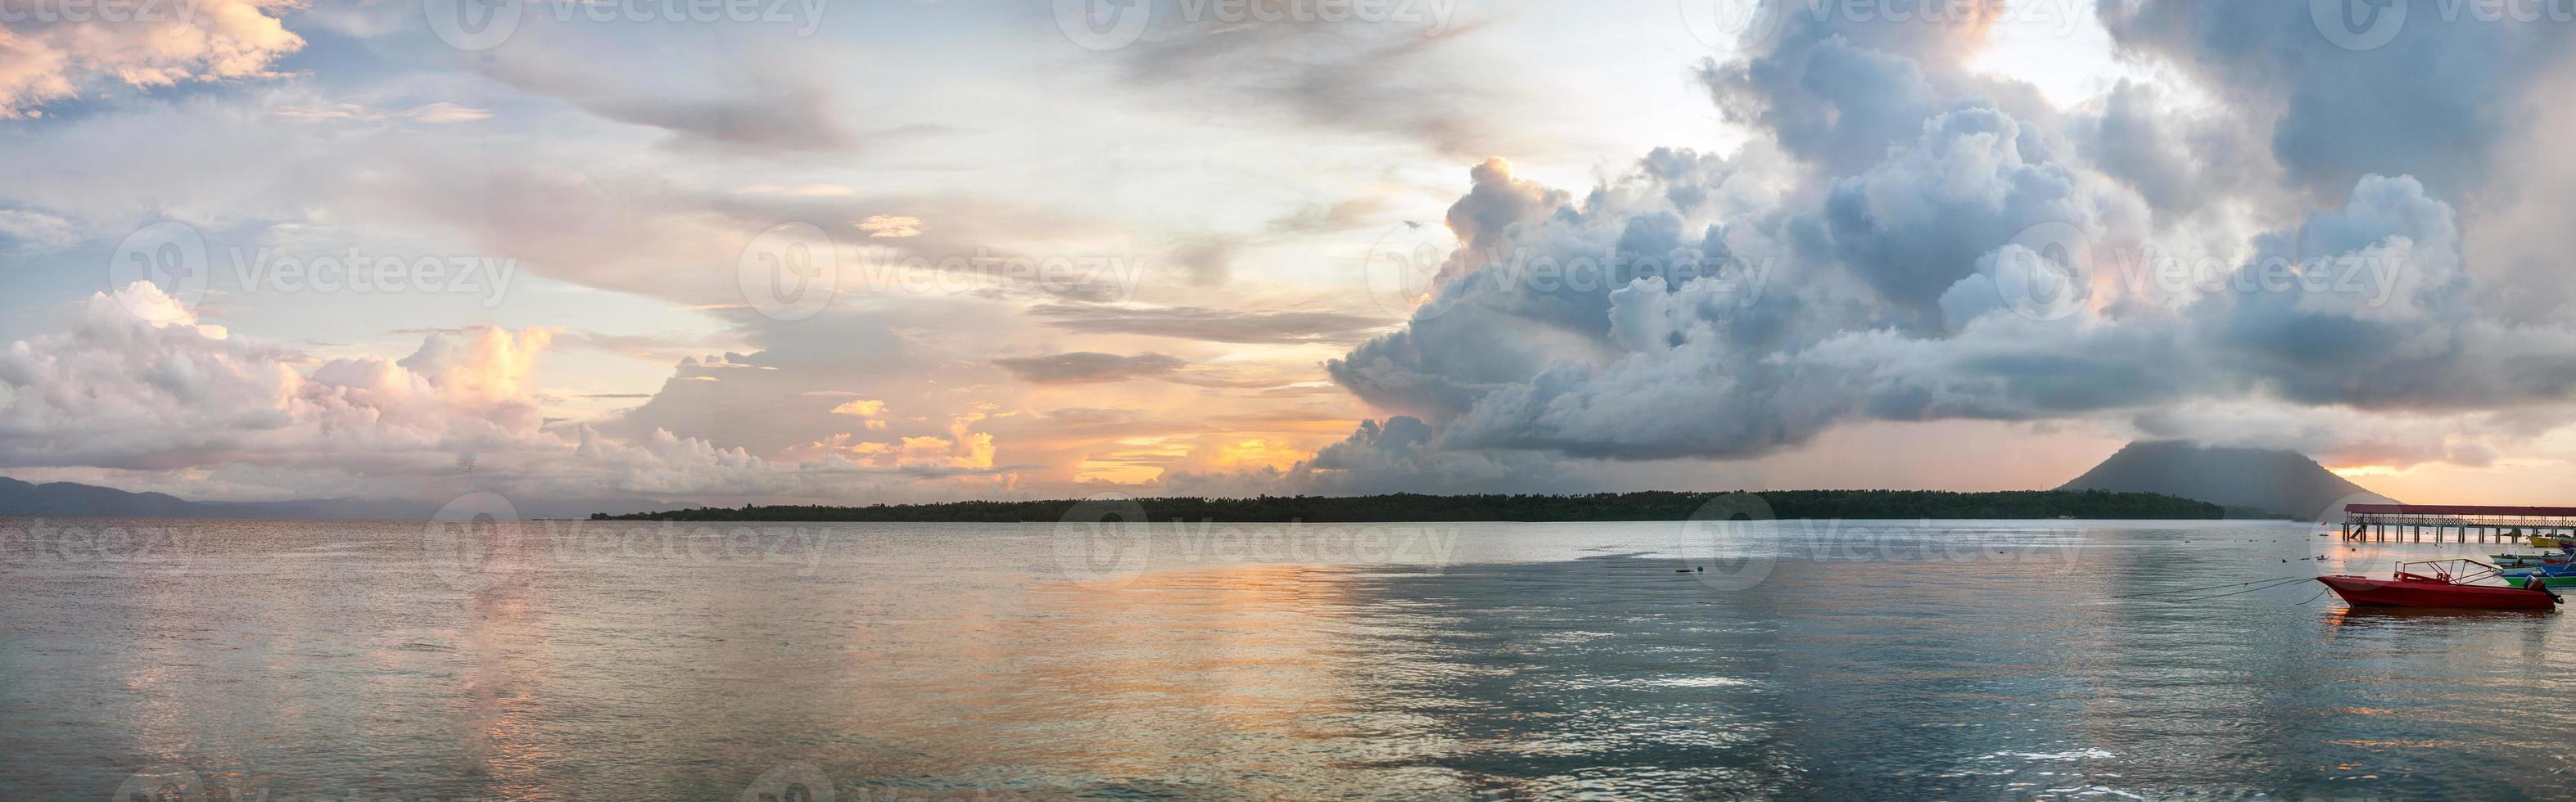 Sunset in turquoise tropical paradise island crystal water photo